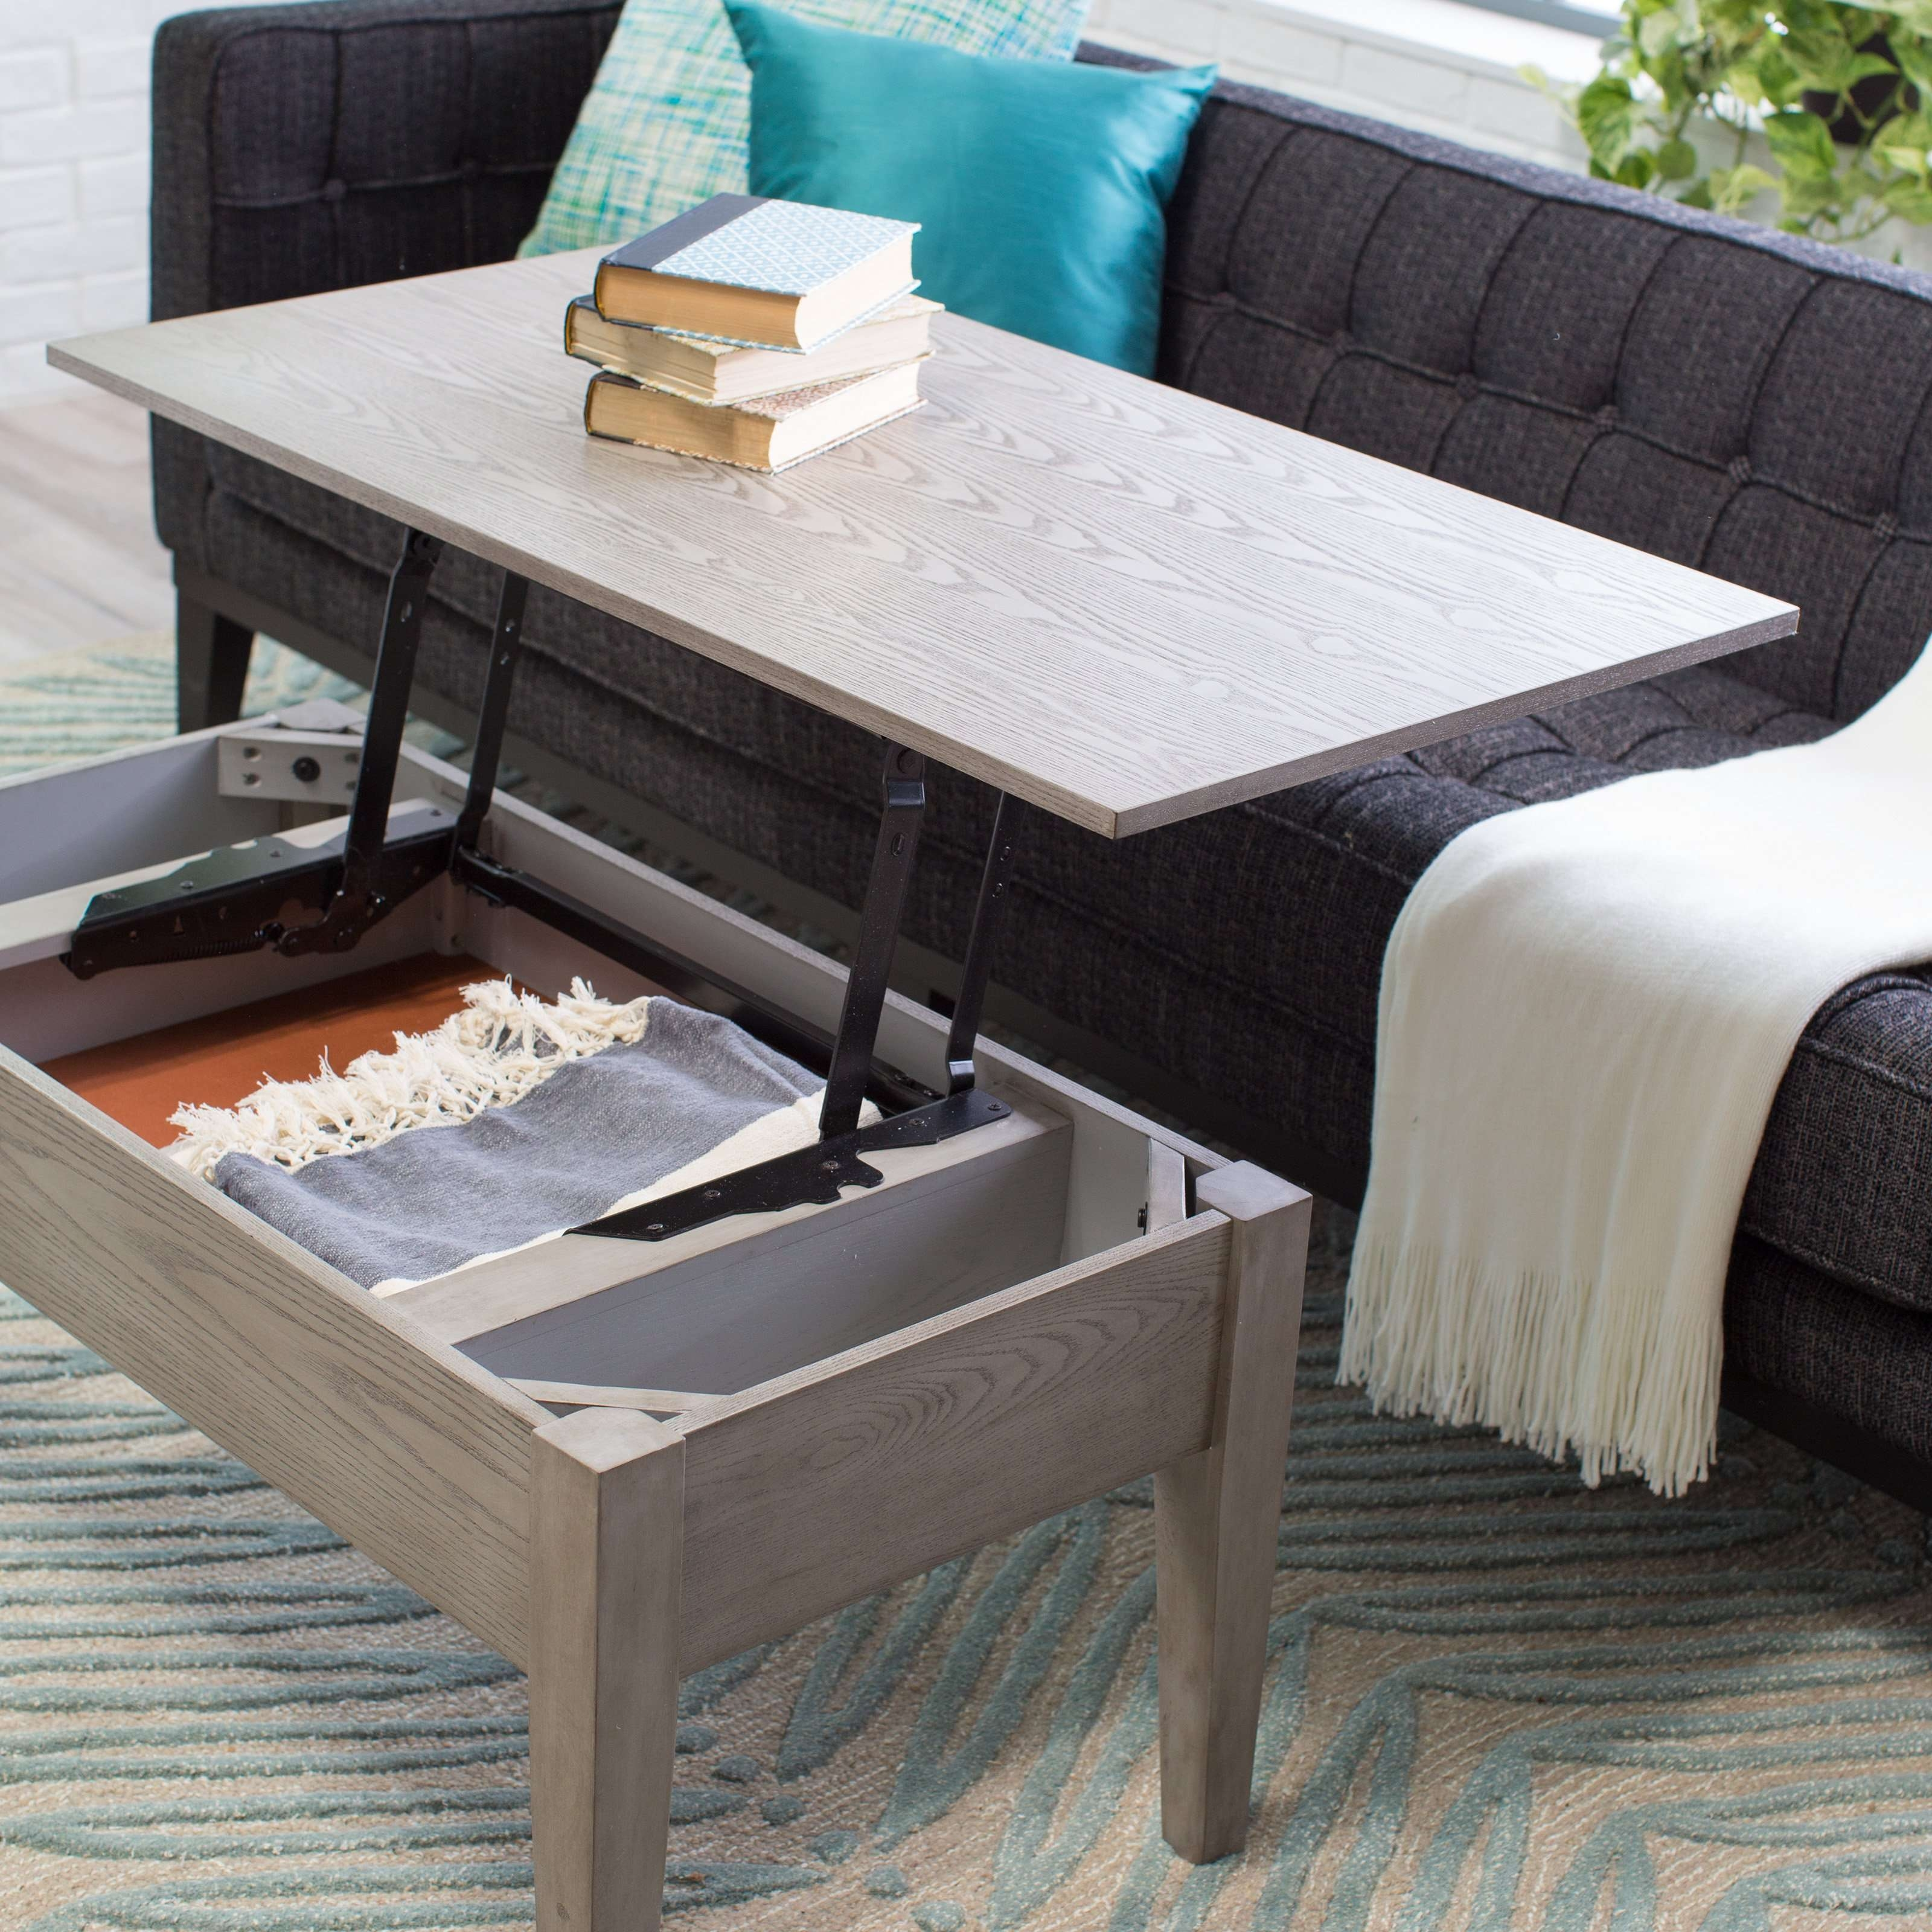 Most Recent Coffee Tables With Raisable Top Within Coffee Tables : Target Coffee Table Extendable Top Lift Cocktail (View 13 of 20)